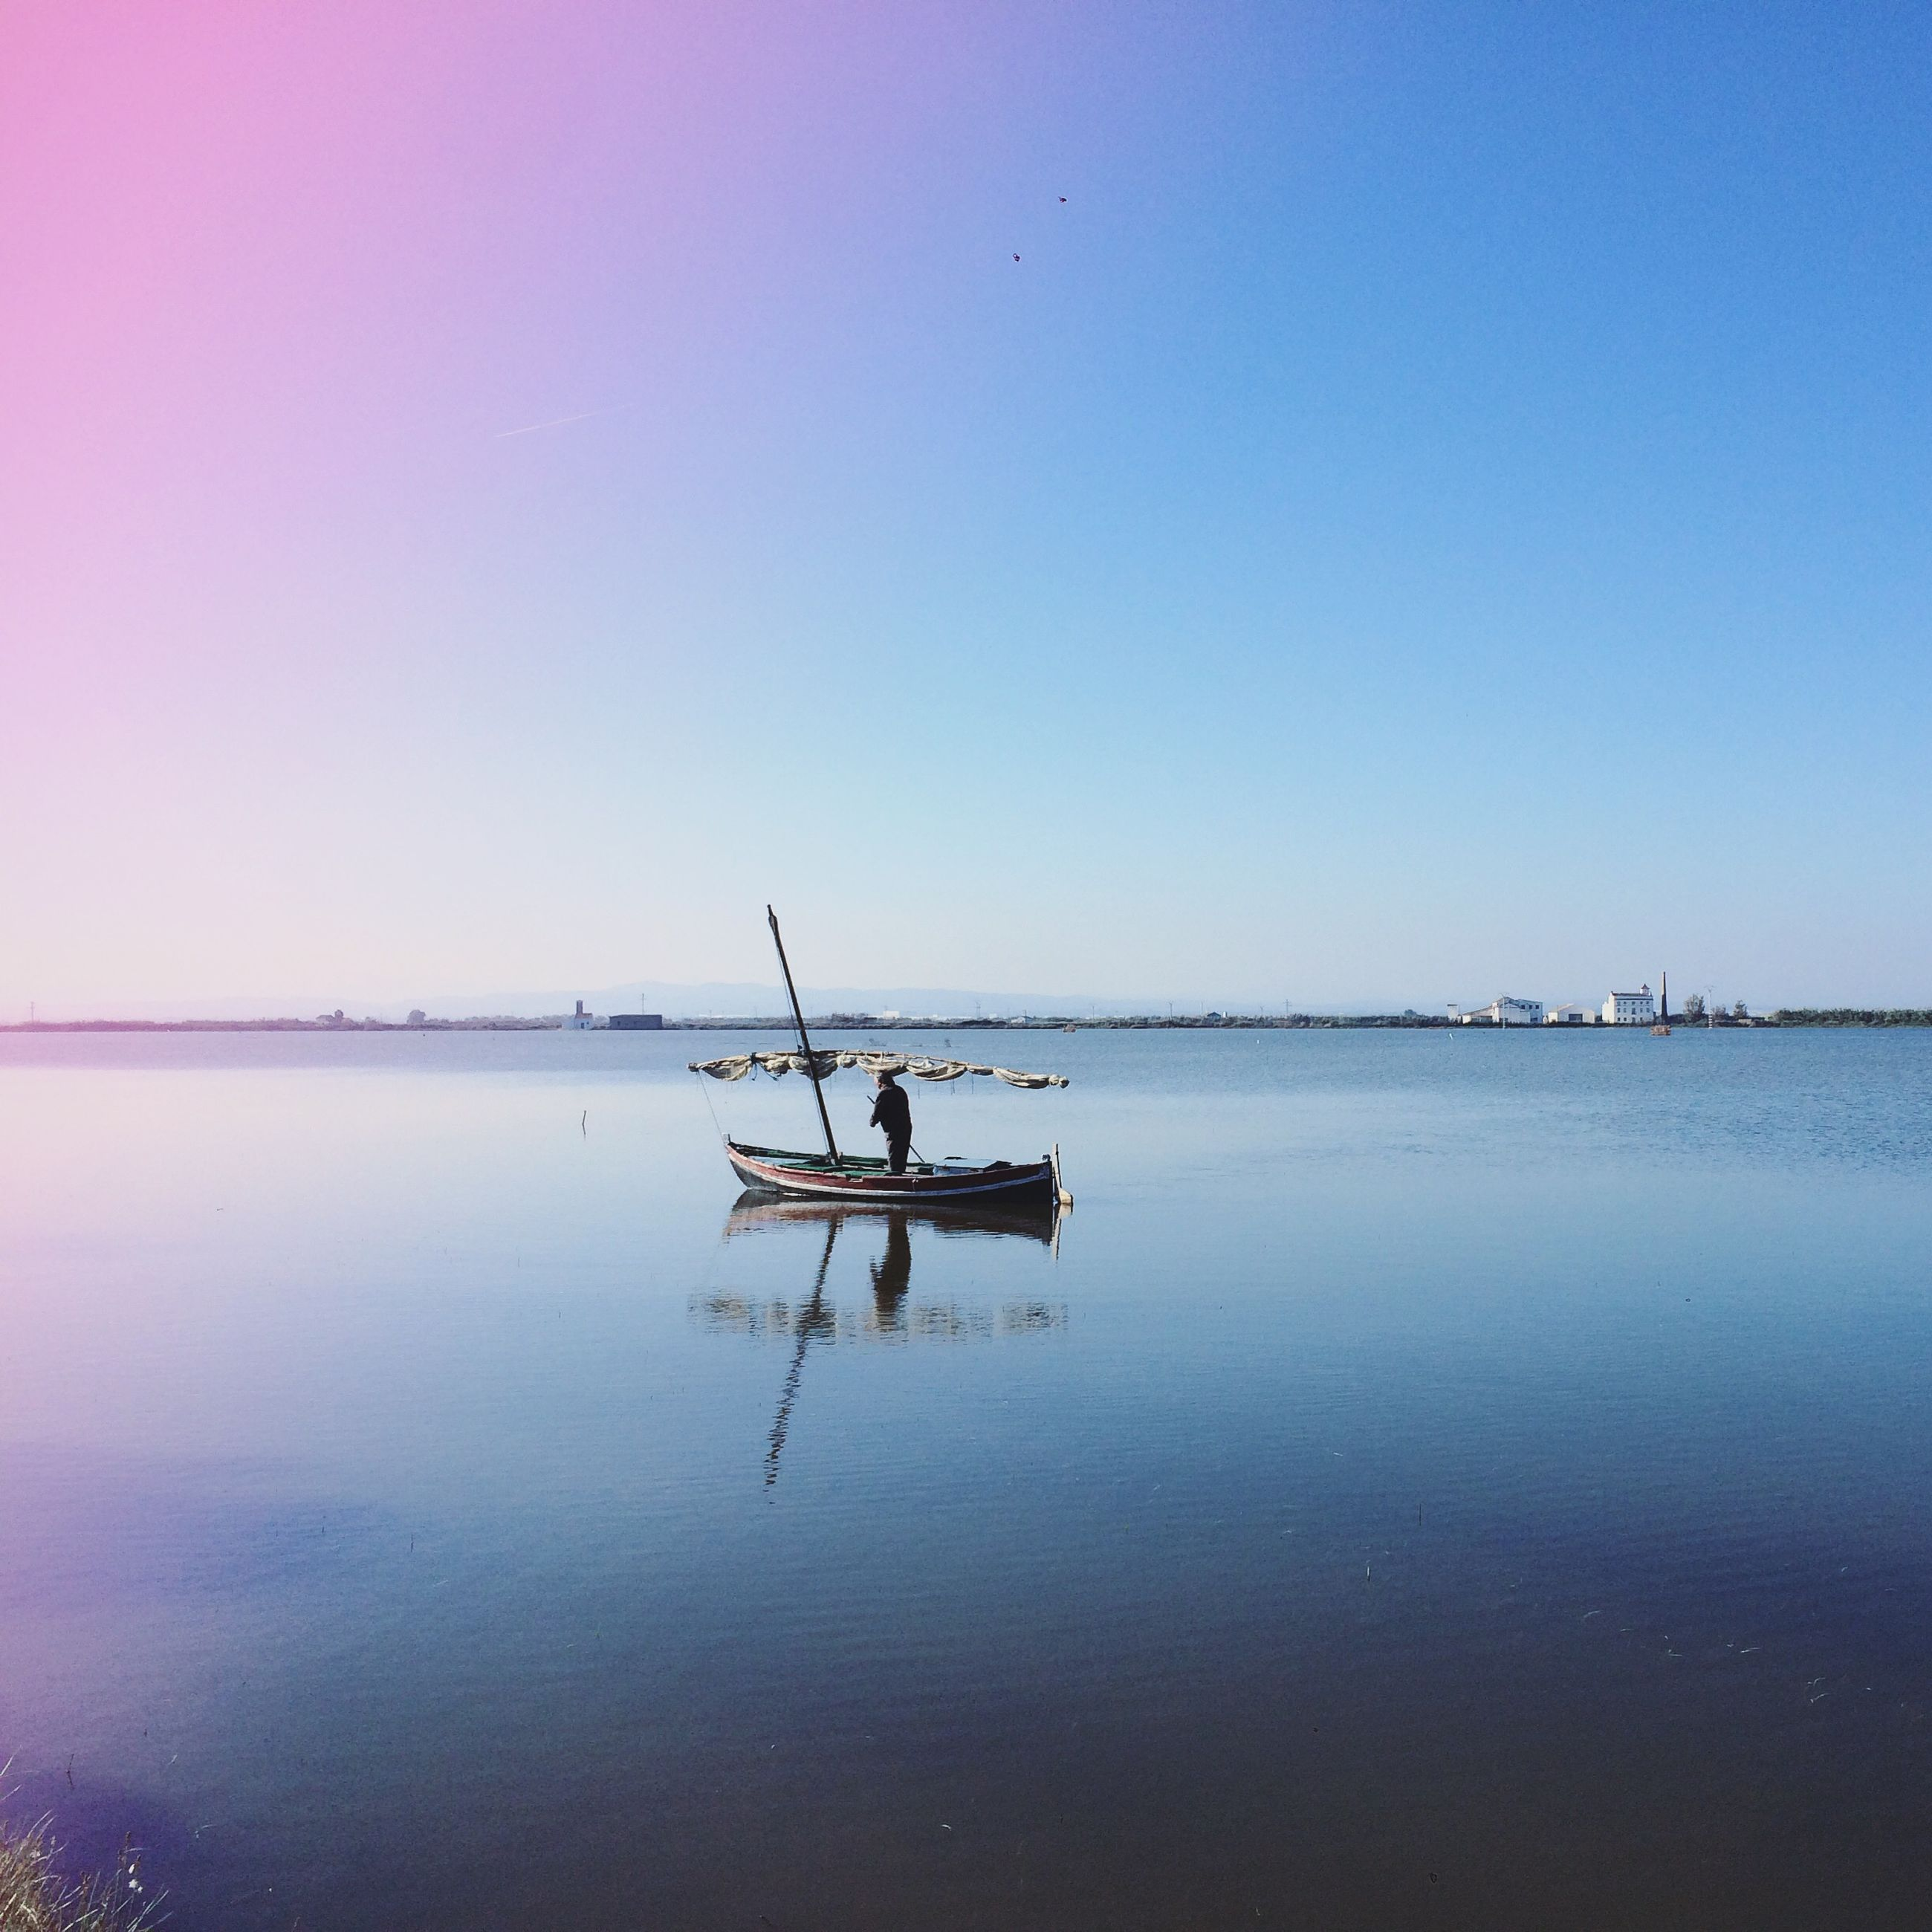 water, transportation, nautical vessel, mode of transport, waterfront, boat, clear sky, copy space, reflection, sea, tranquility, sailing, tranquil scene, travel, nature, silhouette, scenics, sky, outdoors, lake